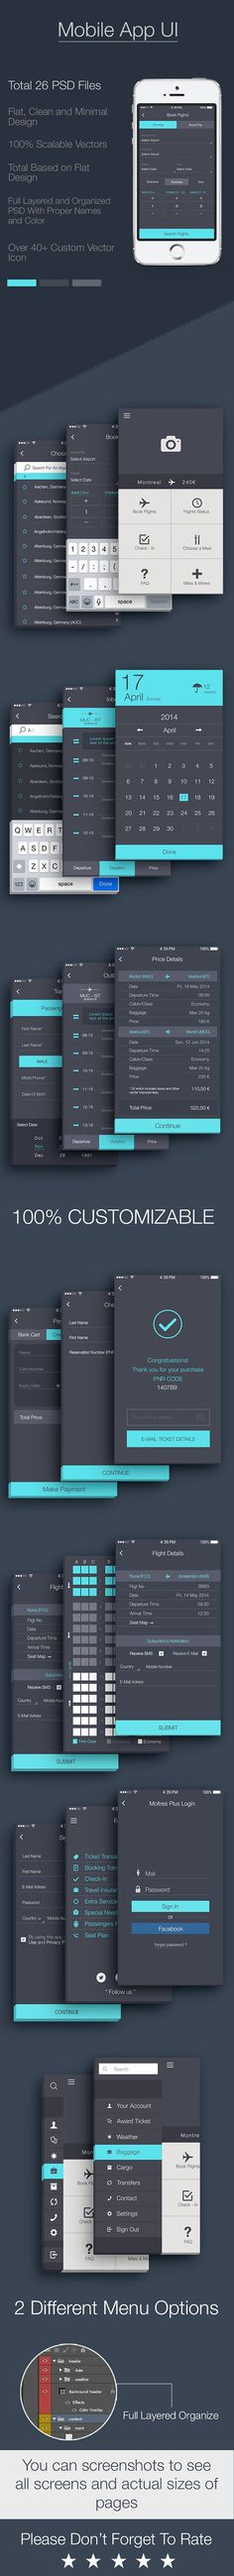 Airlines Mobile App UI on Behance: